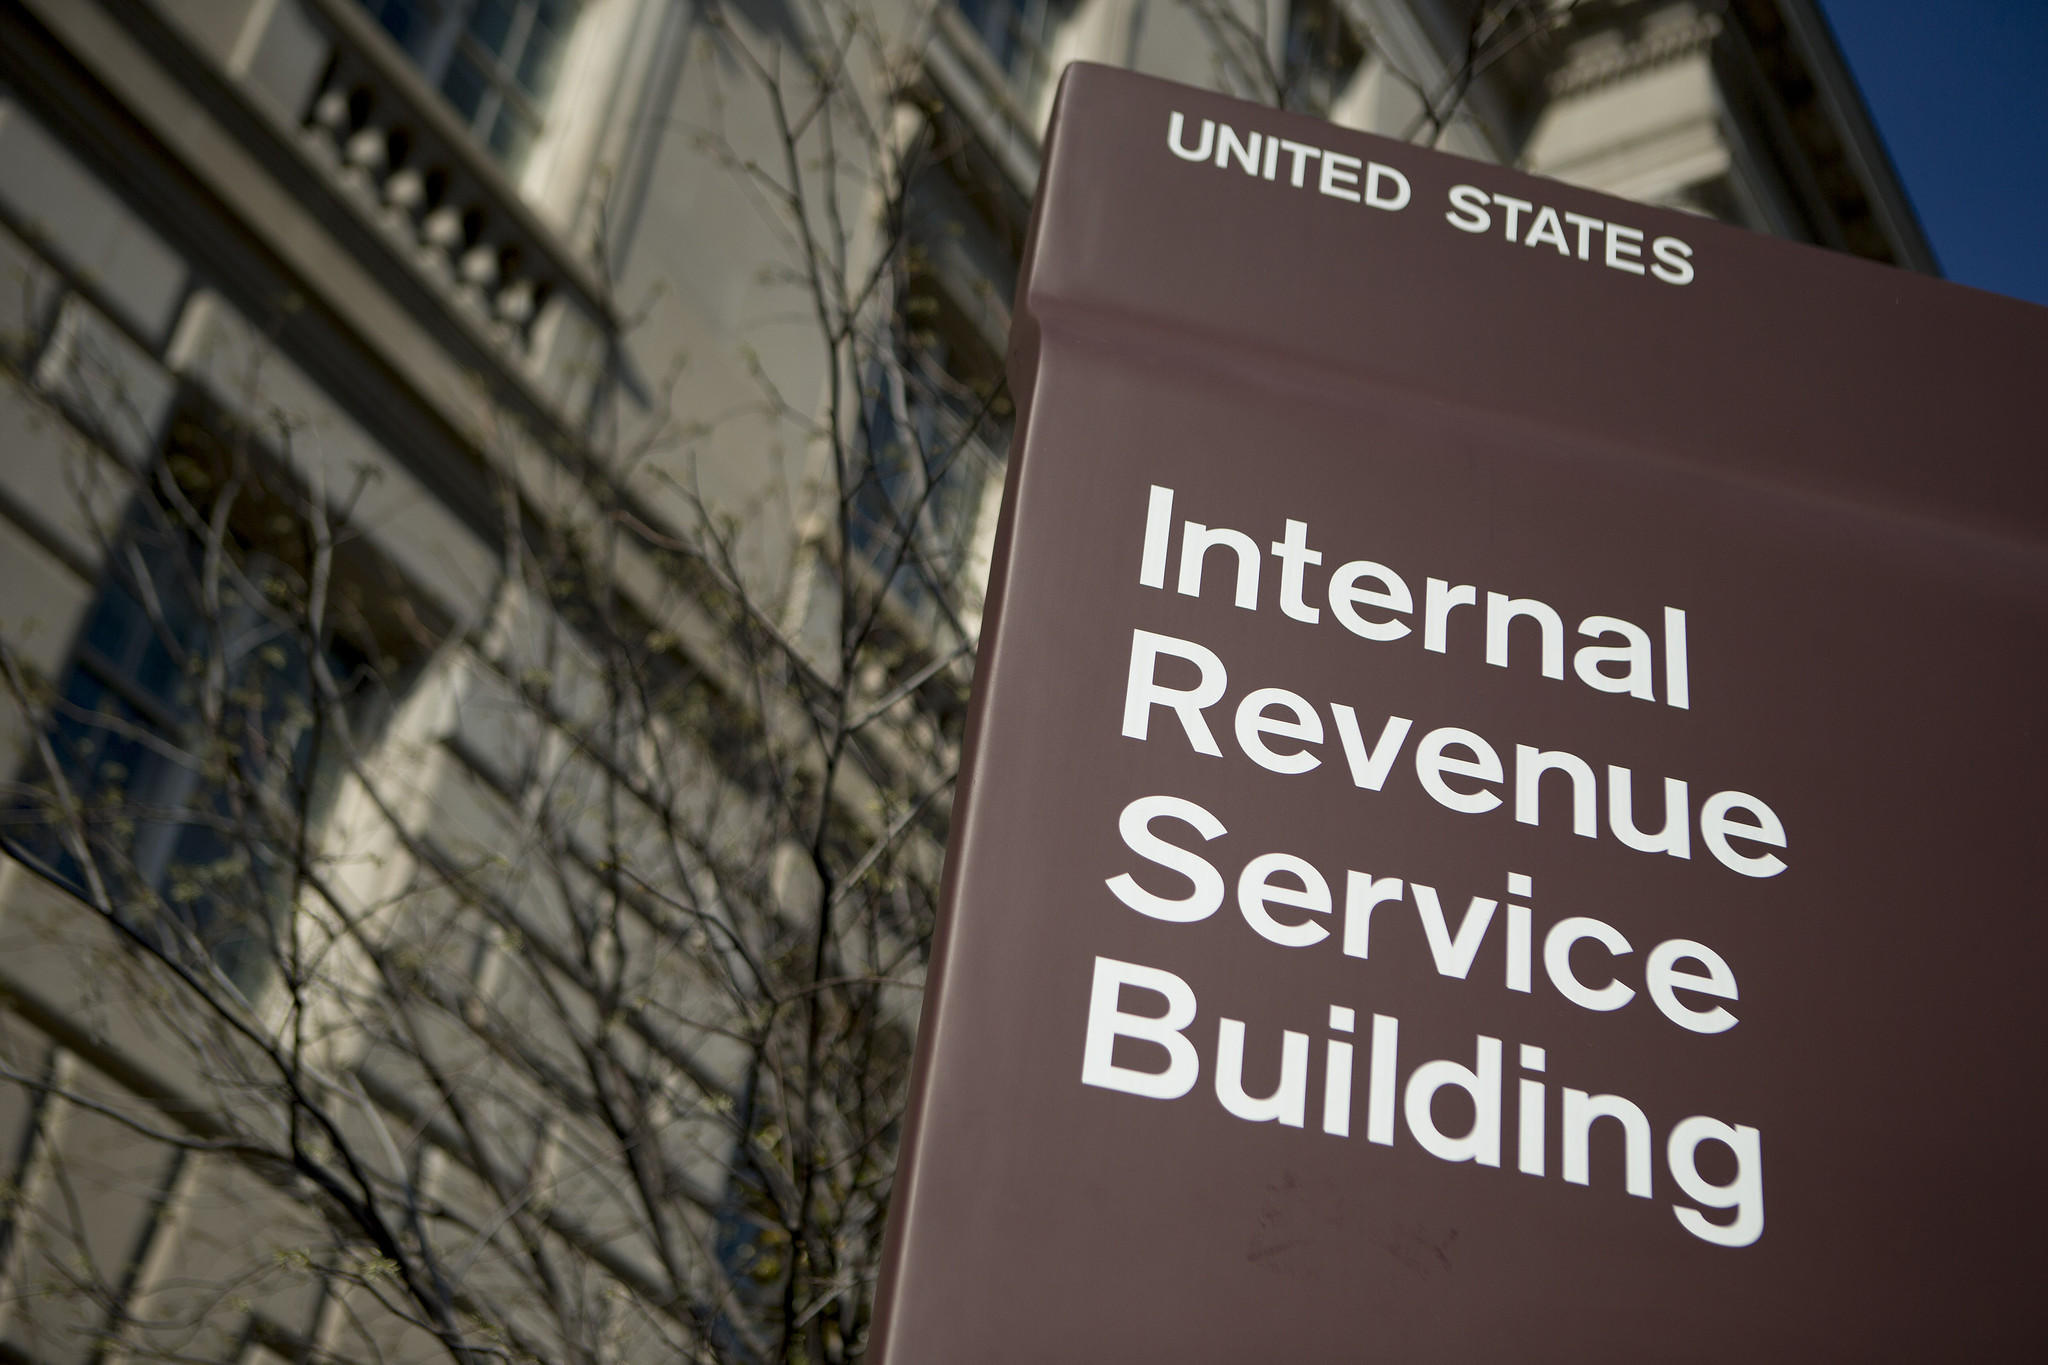 The average American would have to pay $1,259 in state and federal income taxes this year to make up for the revenue lost because of offshore tax havens used by corporations and wealthy individuals, according to a new report.